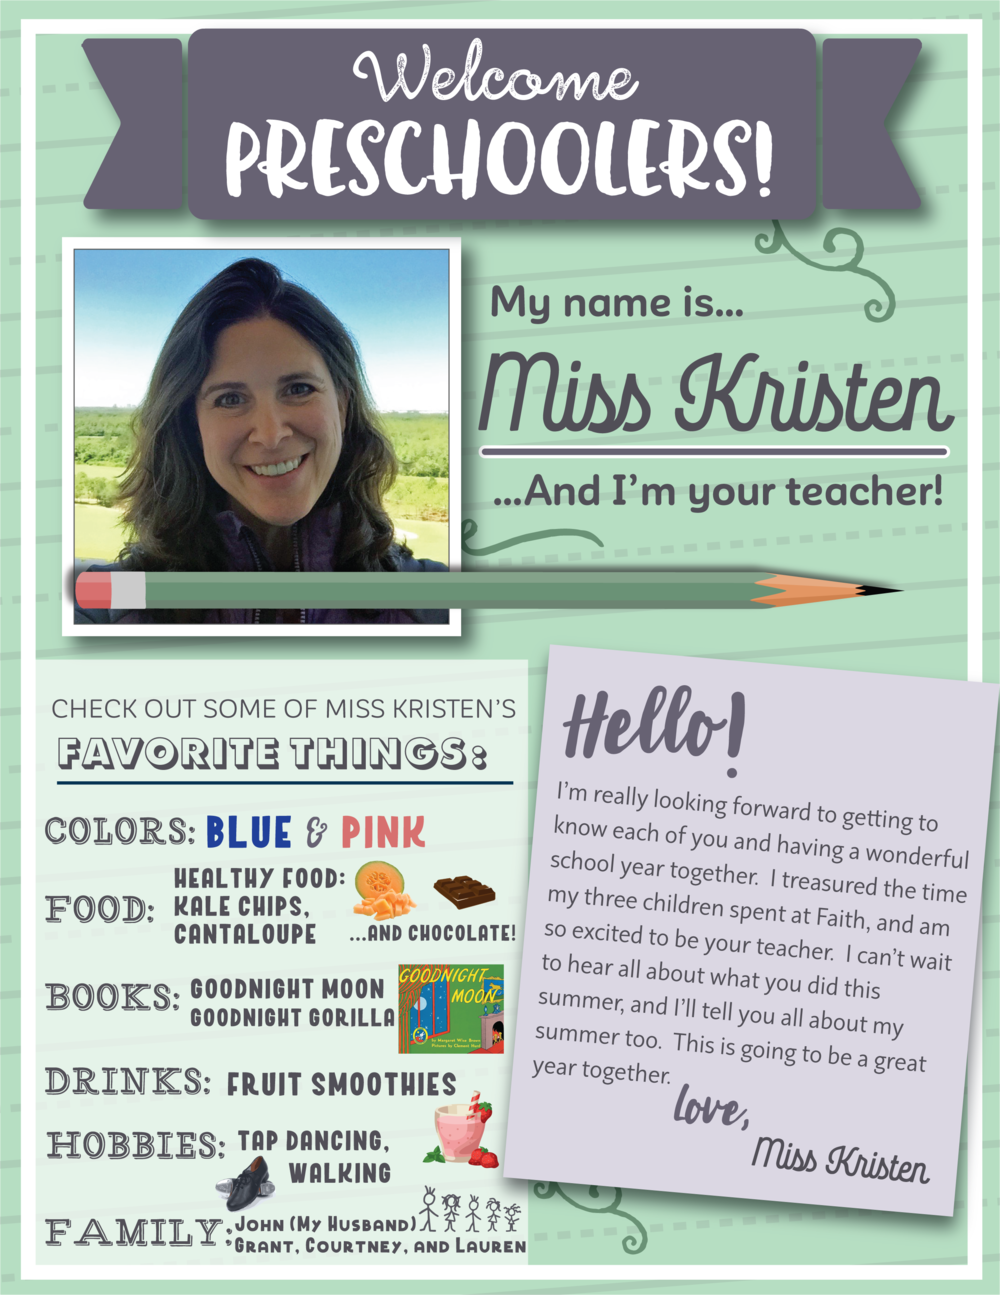 faith preschool - teachers_kristen intro.png